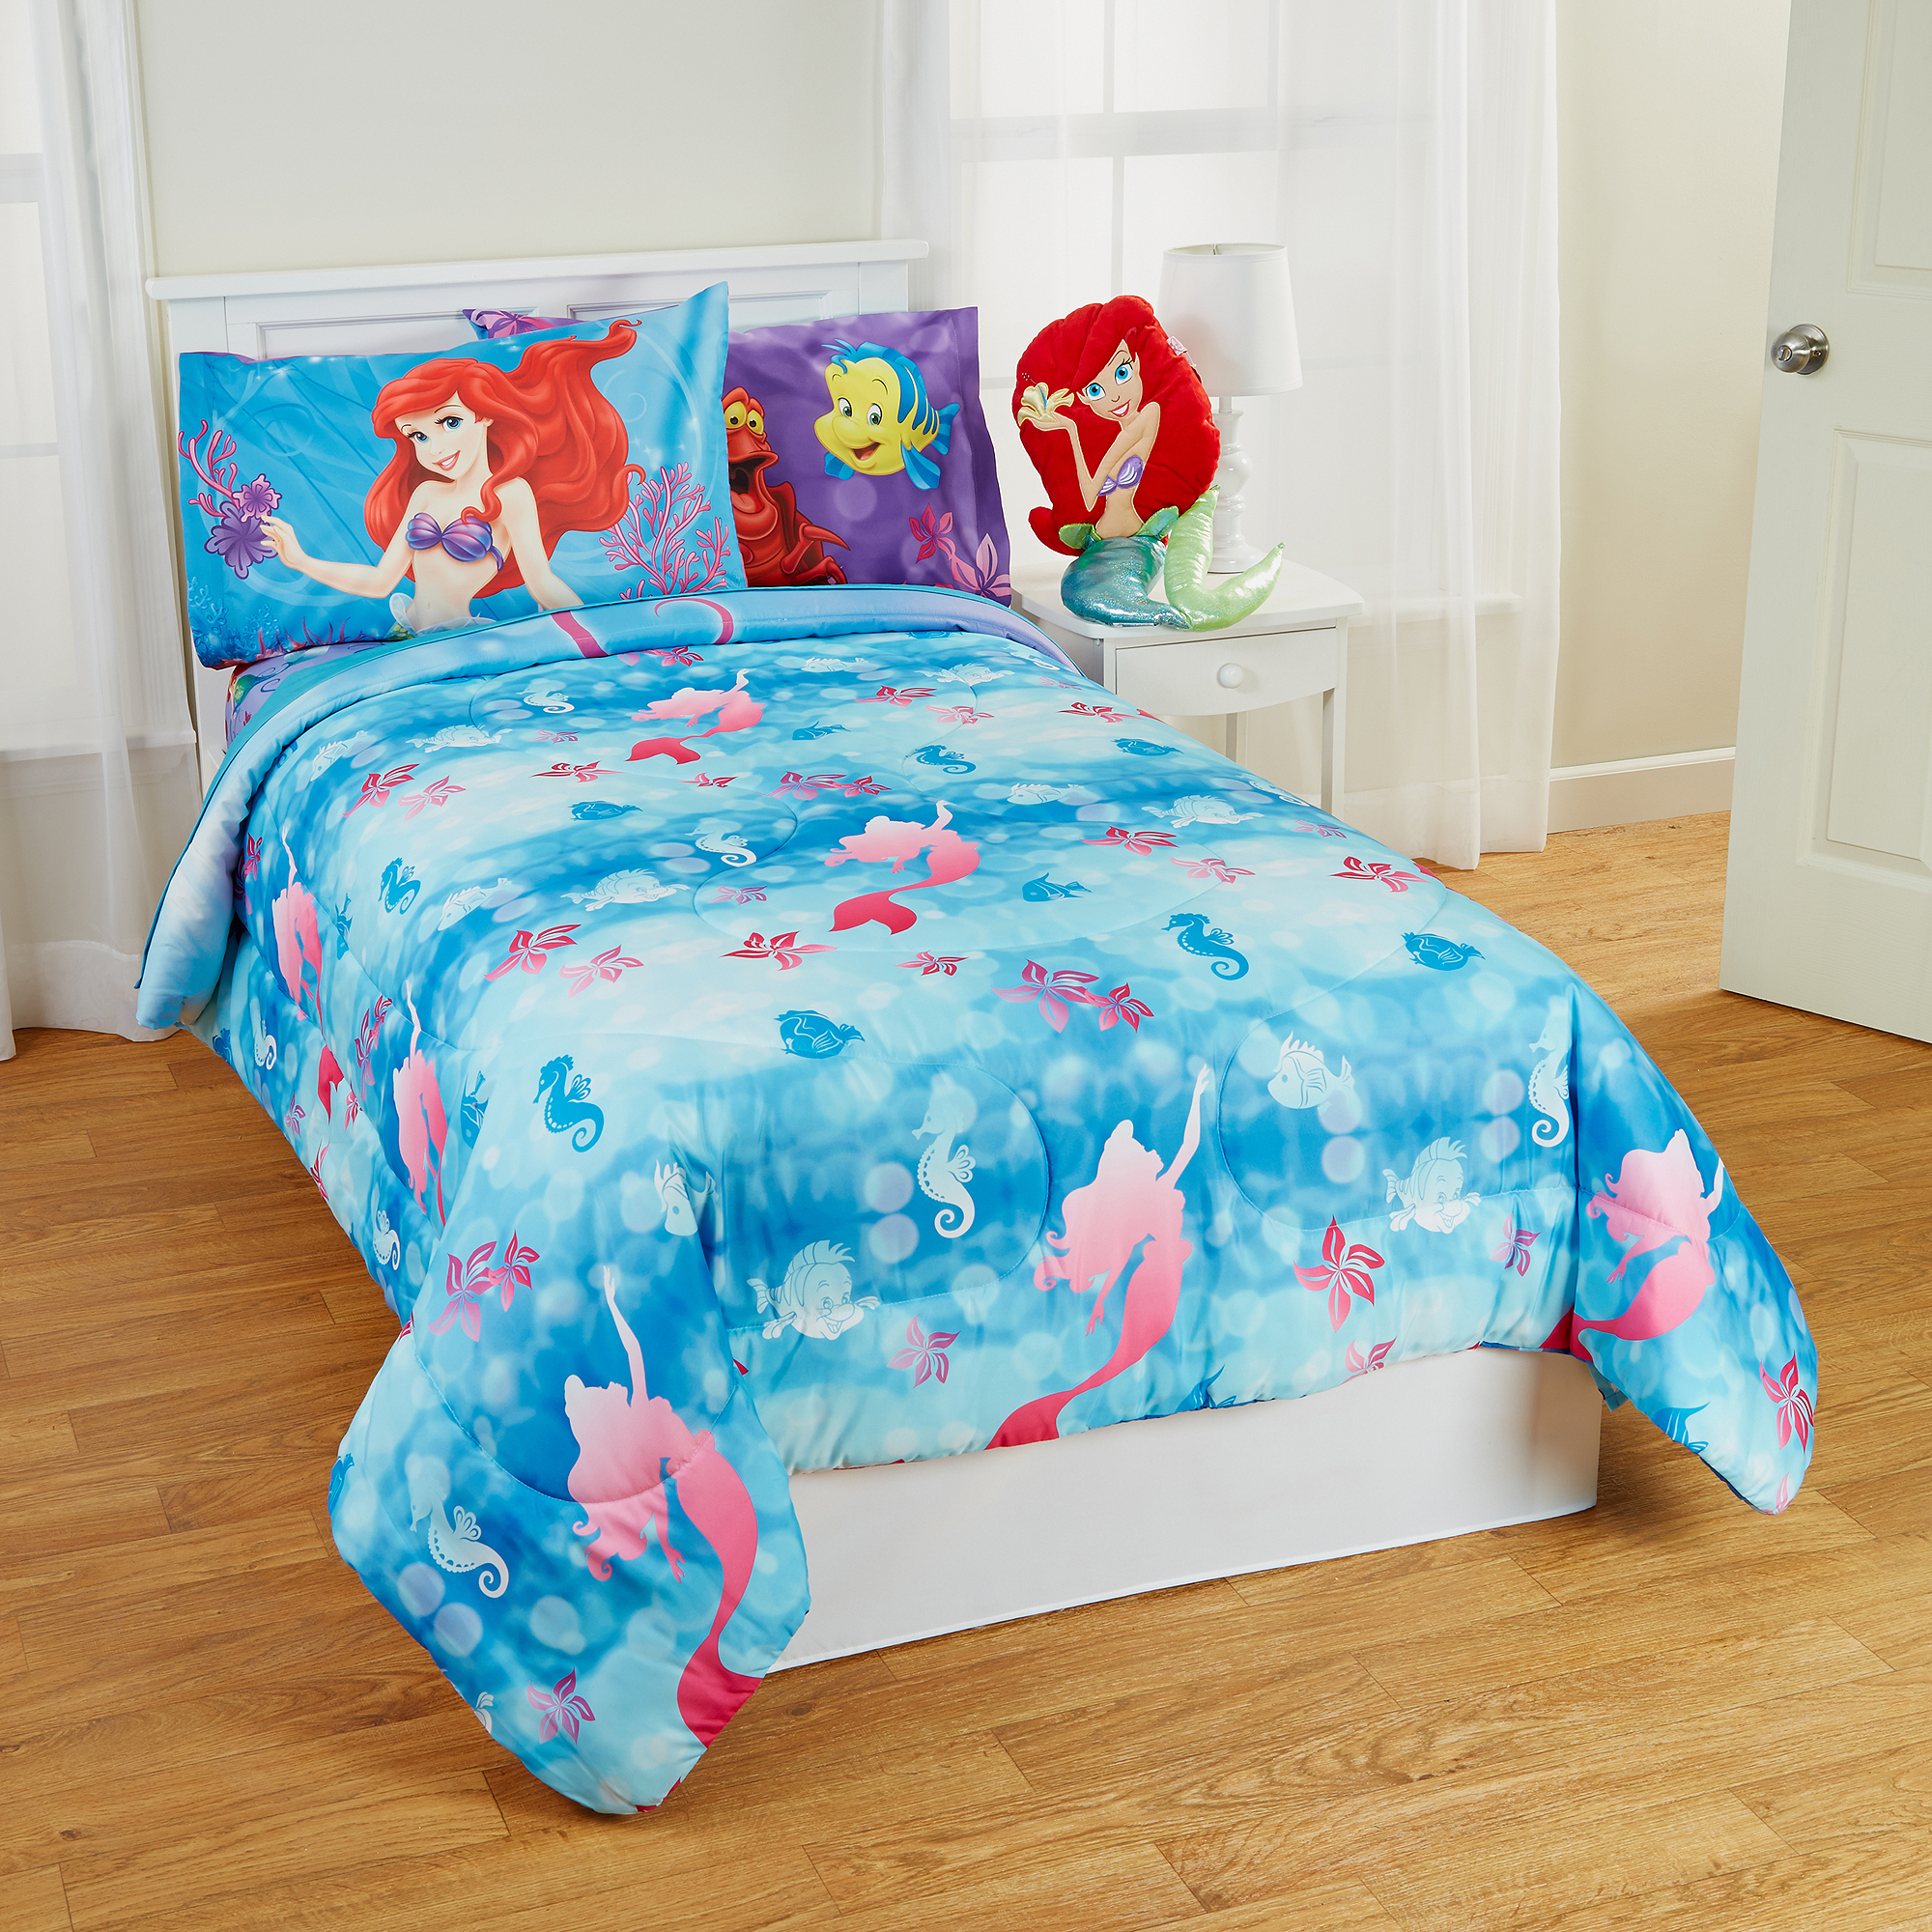 Little Mermaid Twin-Full Bed Comforter Flower Swirls Blanket